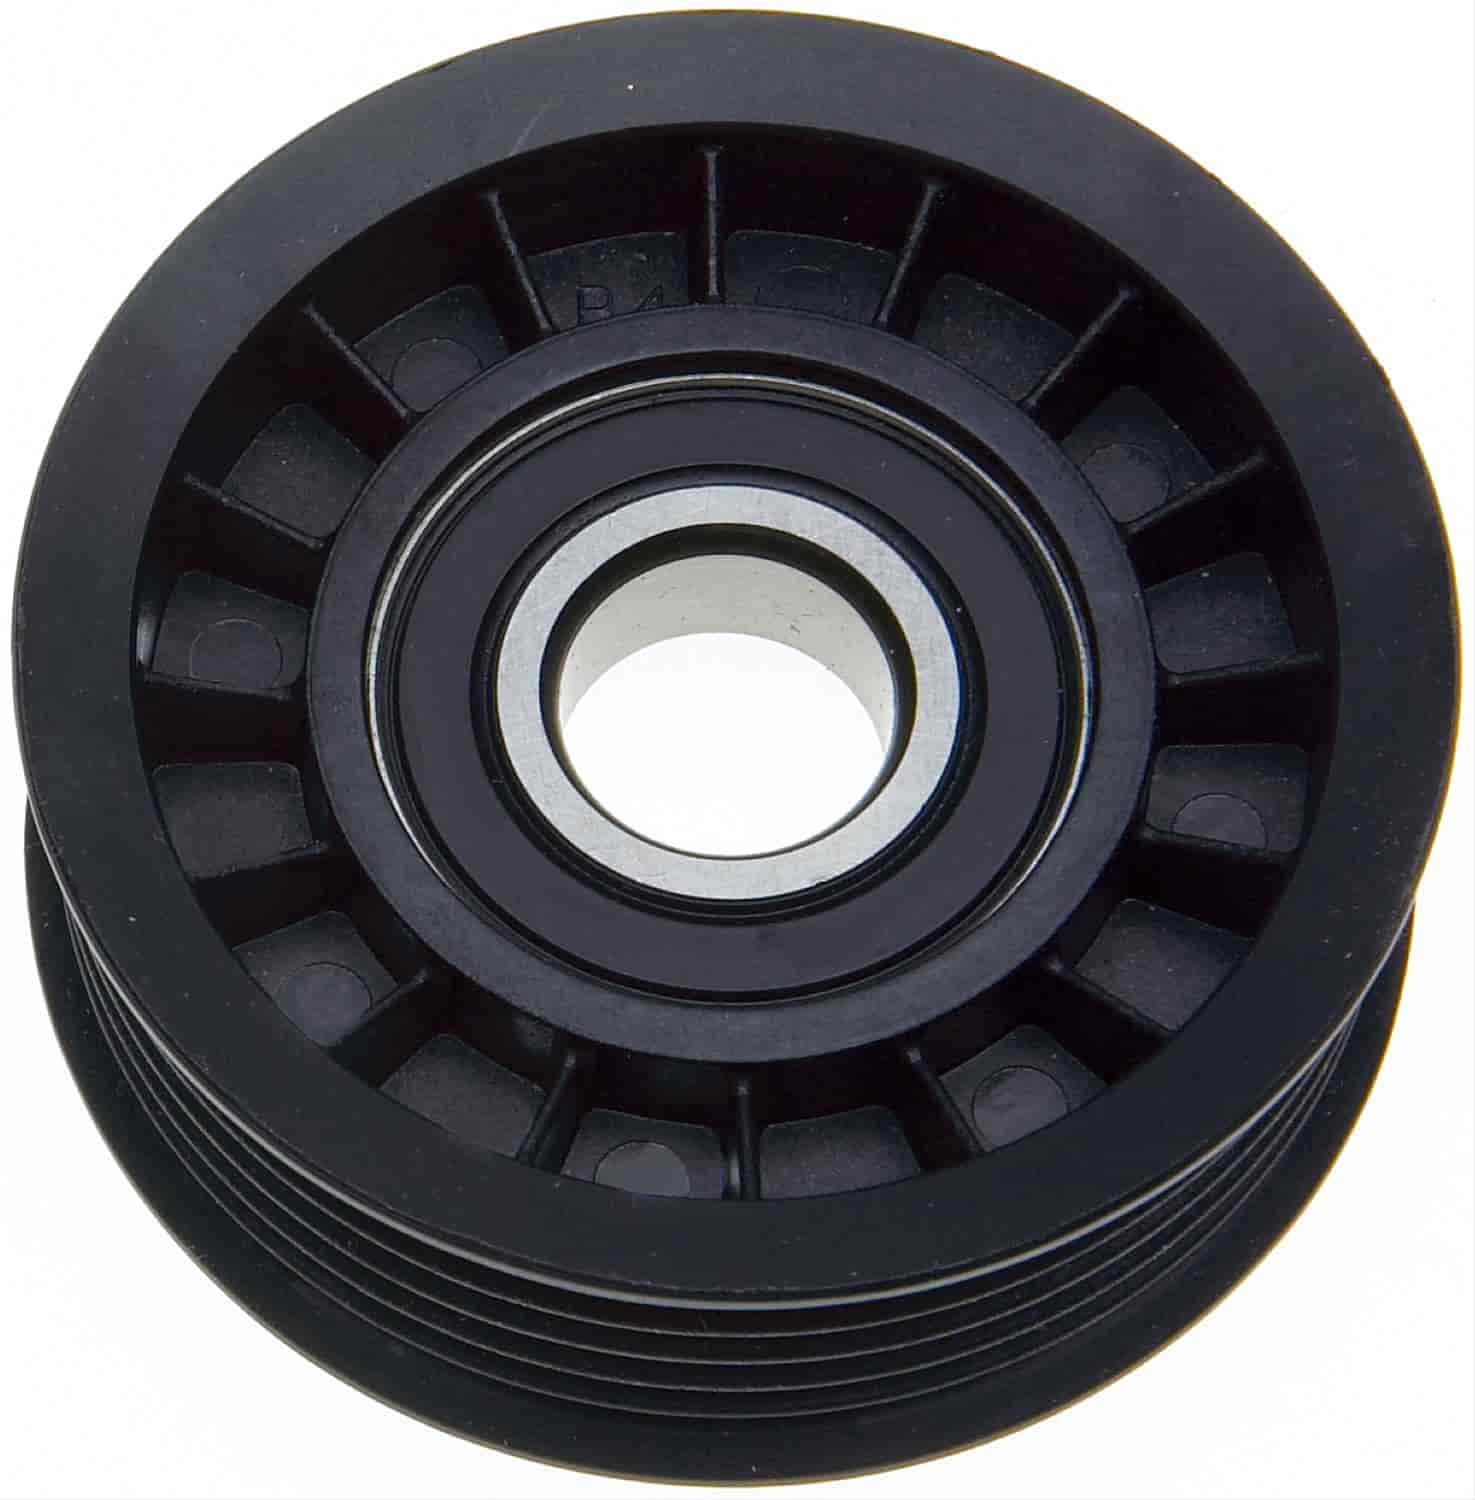 Drive Belt Idler Pulley Fits:AC-Delco 12580773 Cadillac Chevrolet GMC Oldsmobil